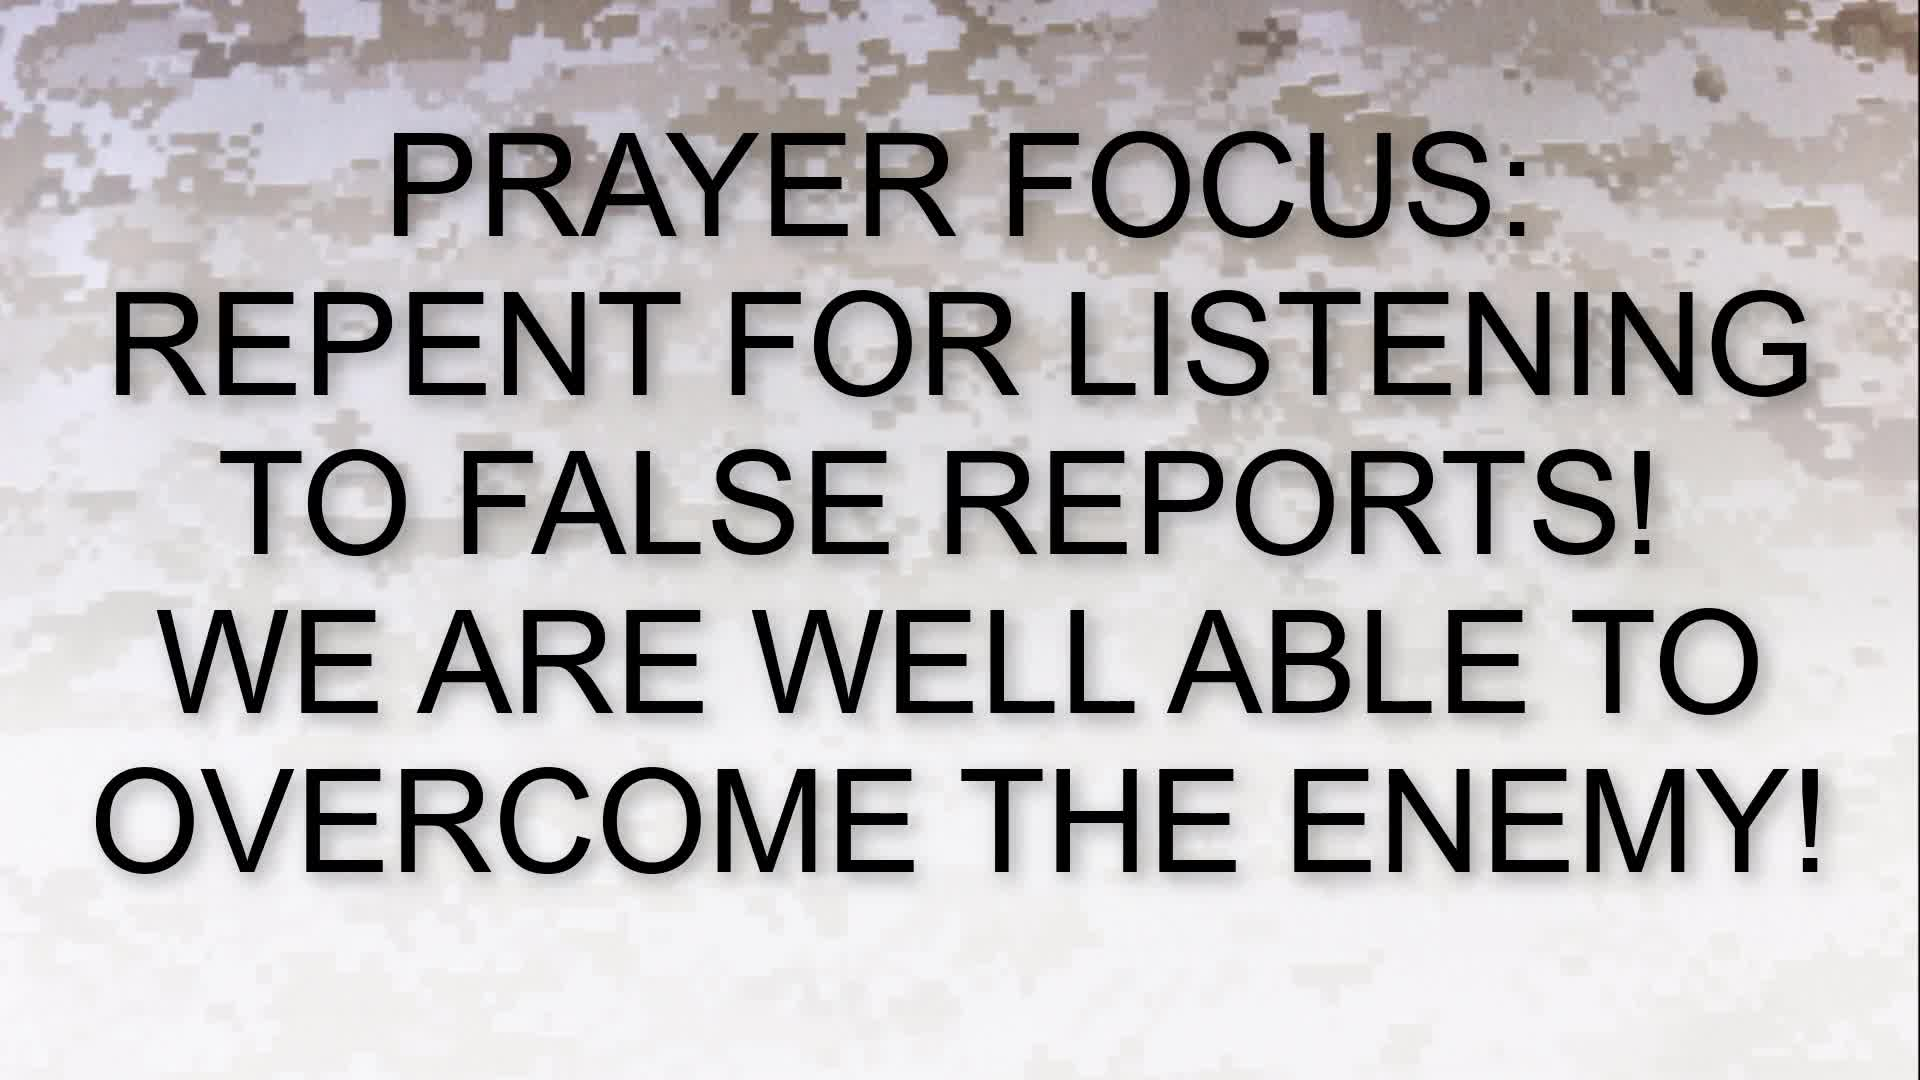 PRAYER FOCUS REPENT FOR LISTENING TO FALSE REPORTS!